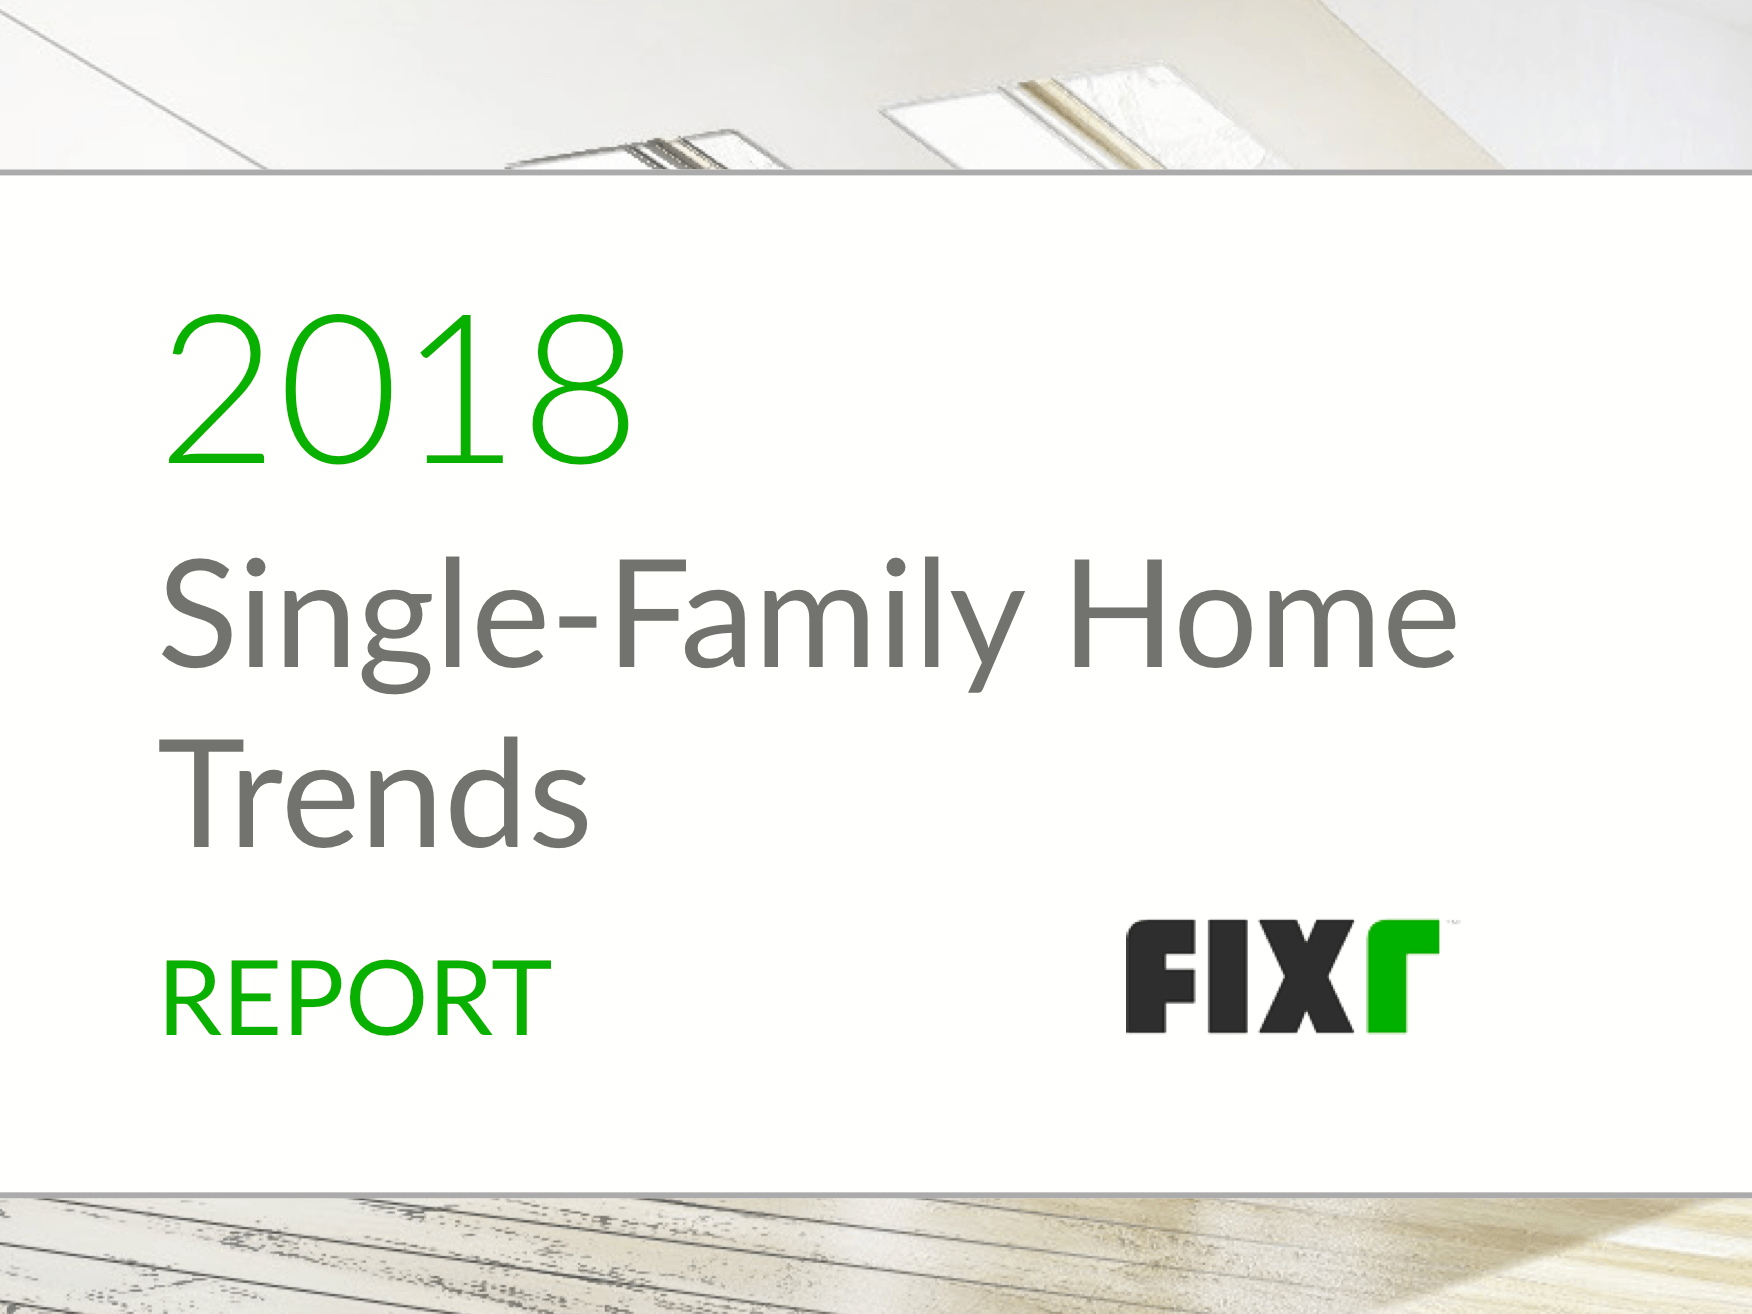 single_family_home_trends_2018_header